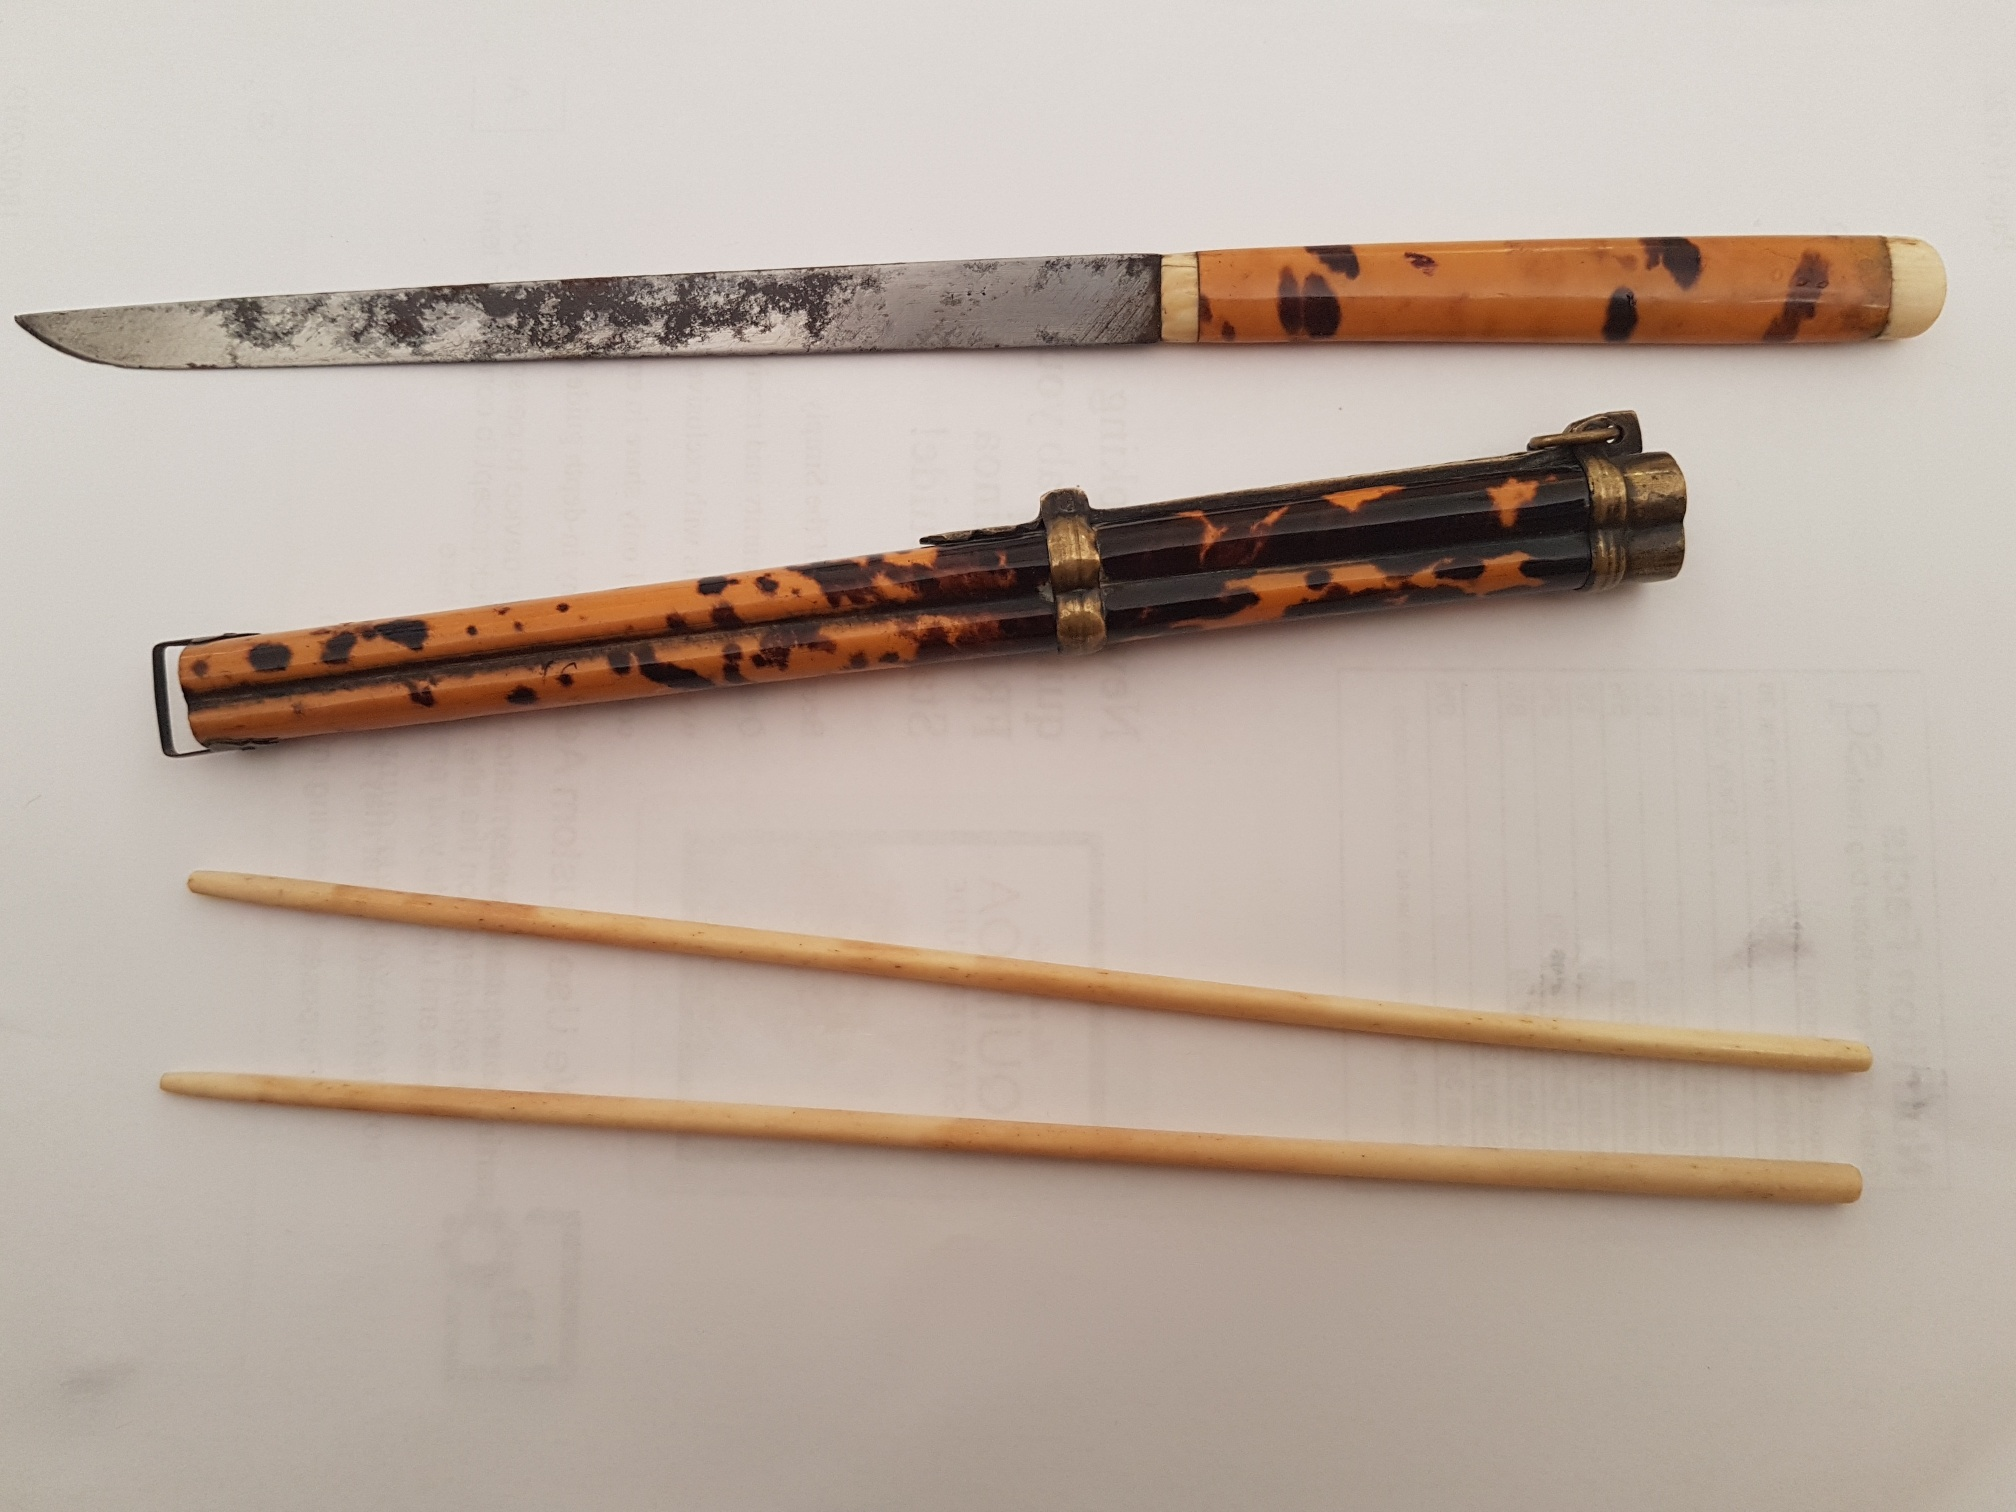 Antique 19th Century Tortoiseshell Chopstick Set - £295